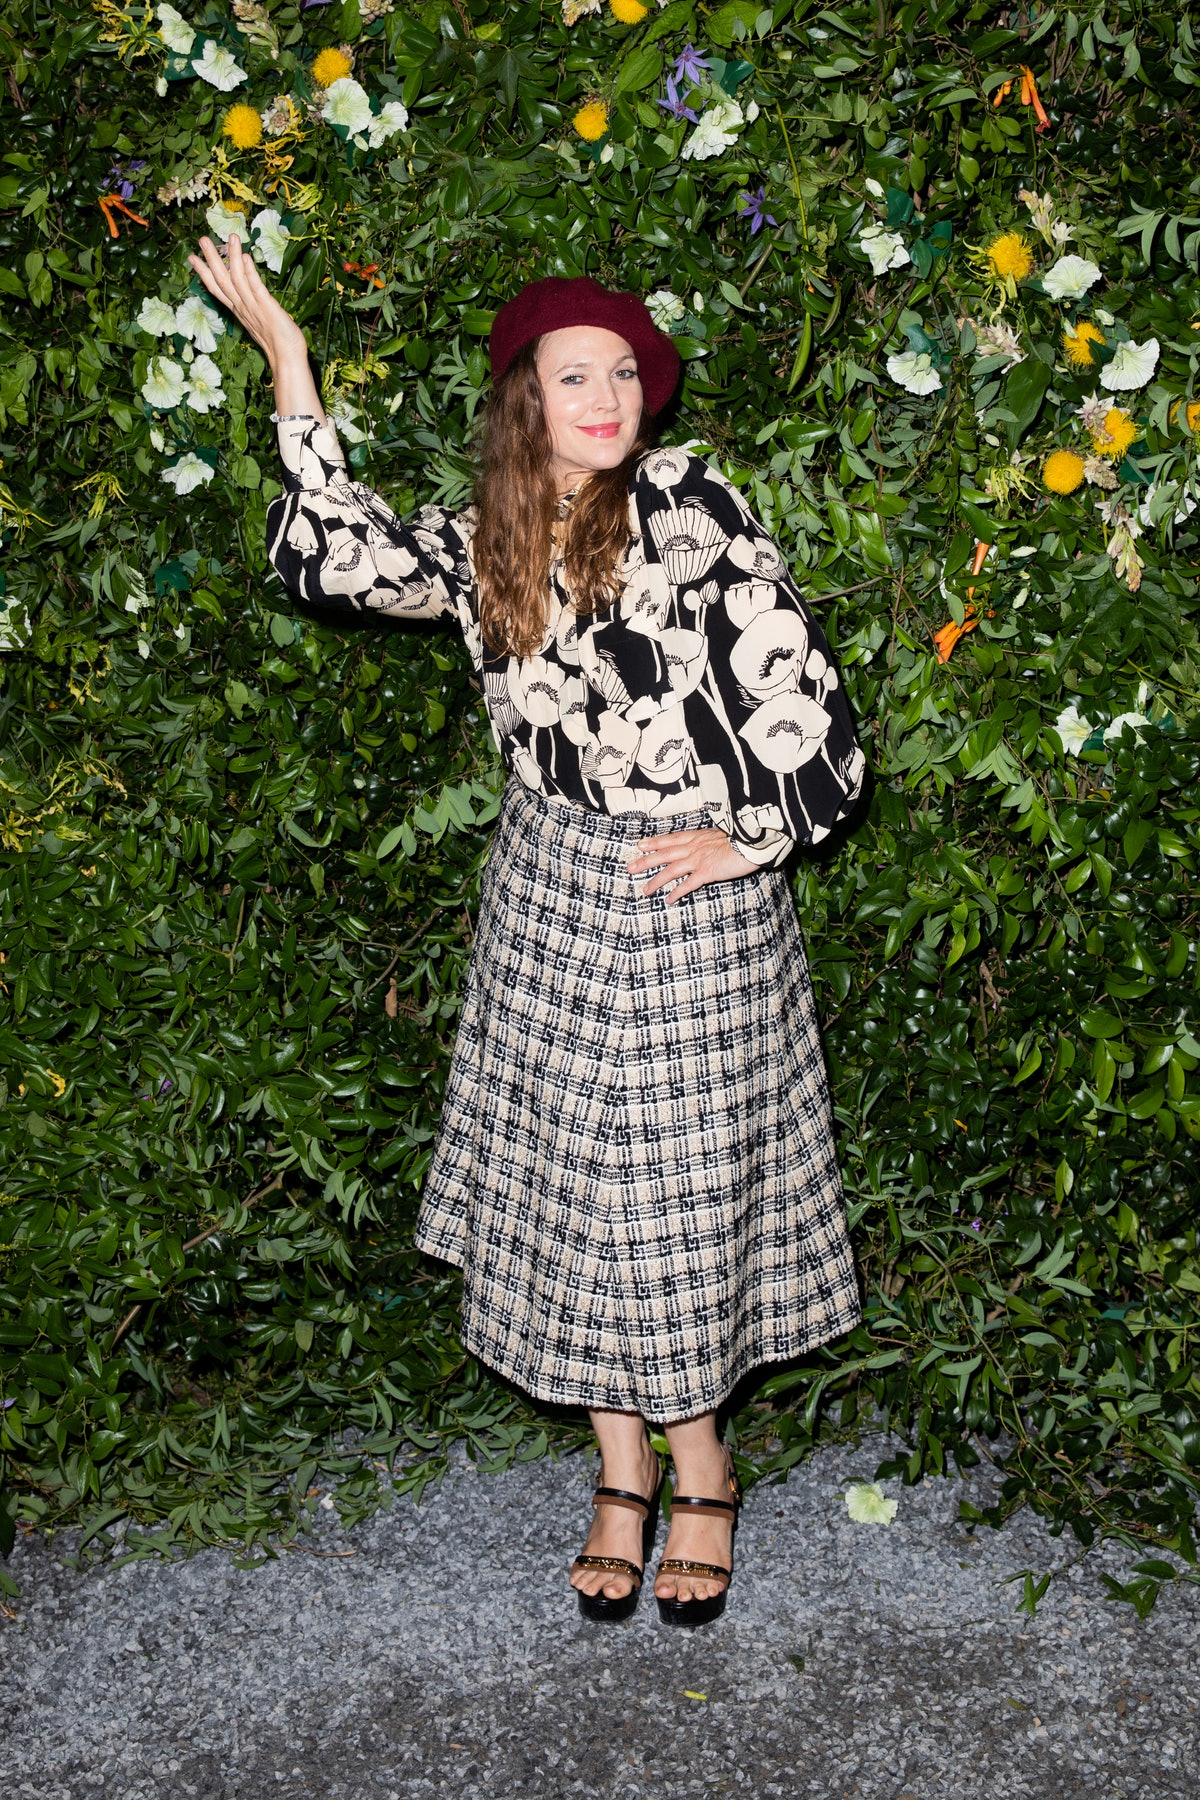 Drew Barrymore at a Gucci party